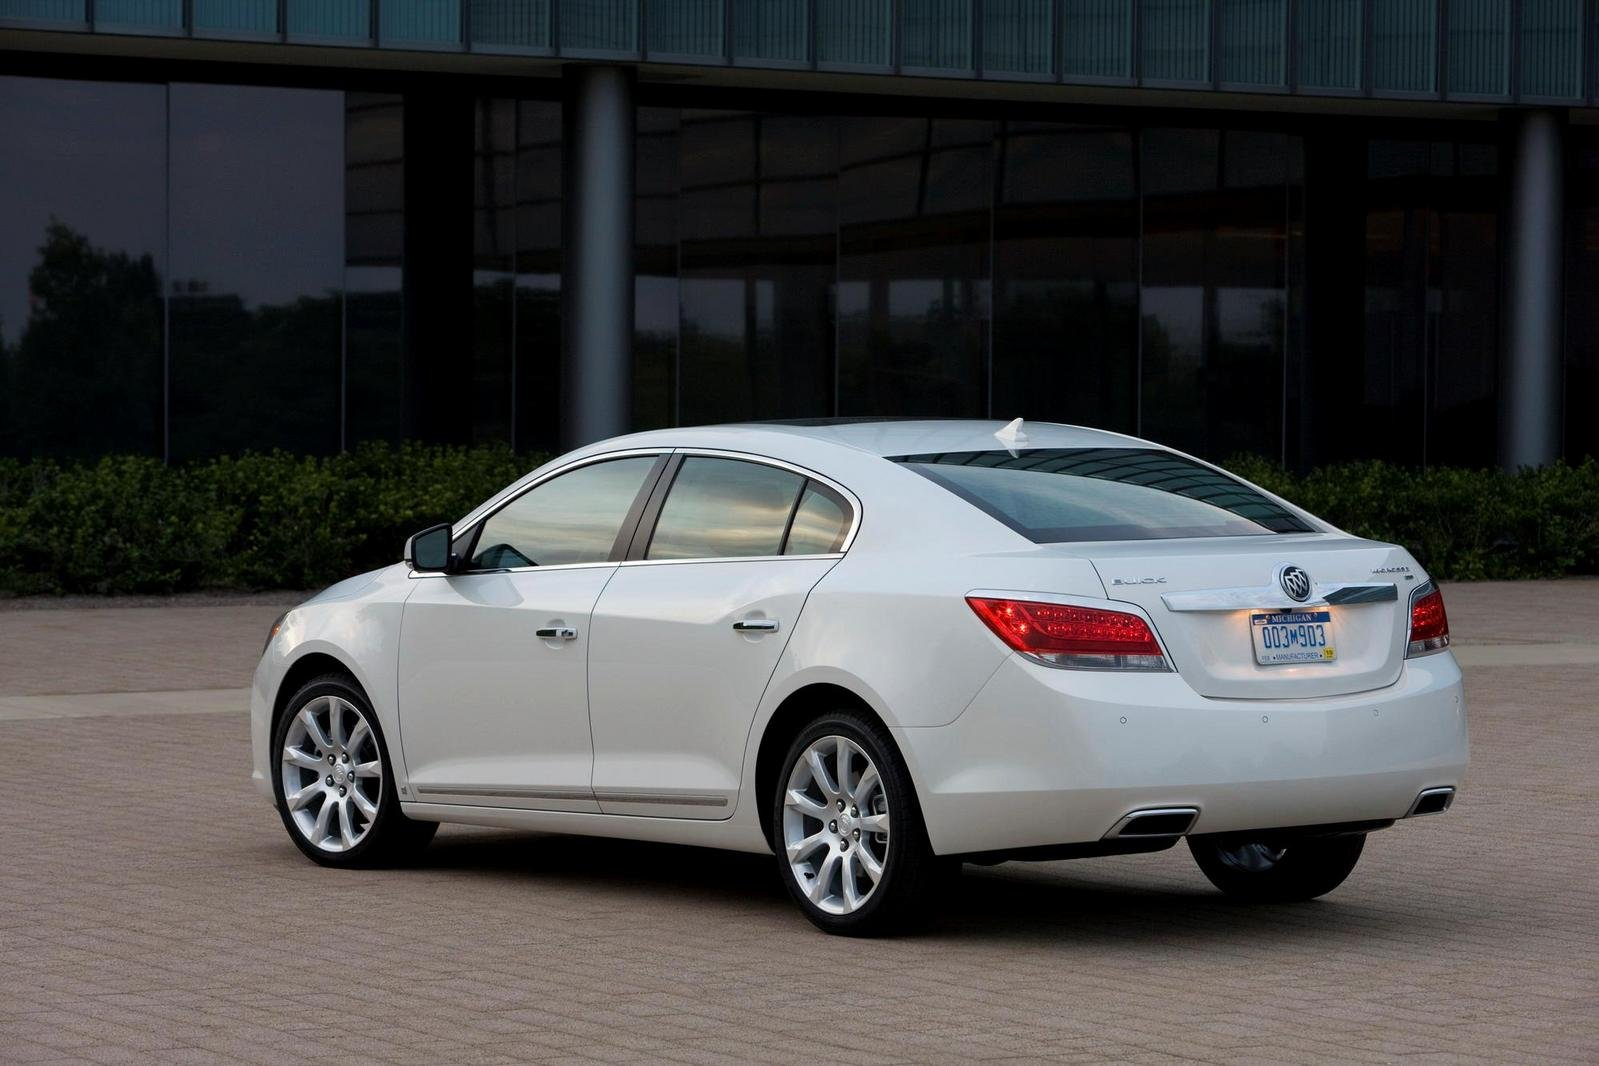 2010 buick lacrosse picture 344634 car review top speed. Black Bedroom Furniture Sets. Home Design Ideas